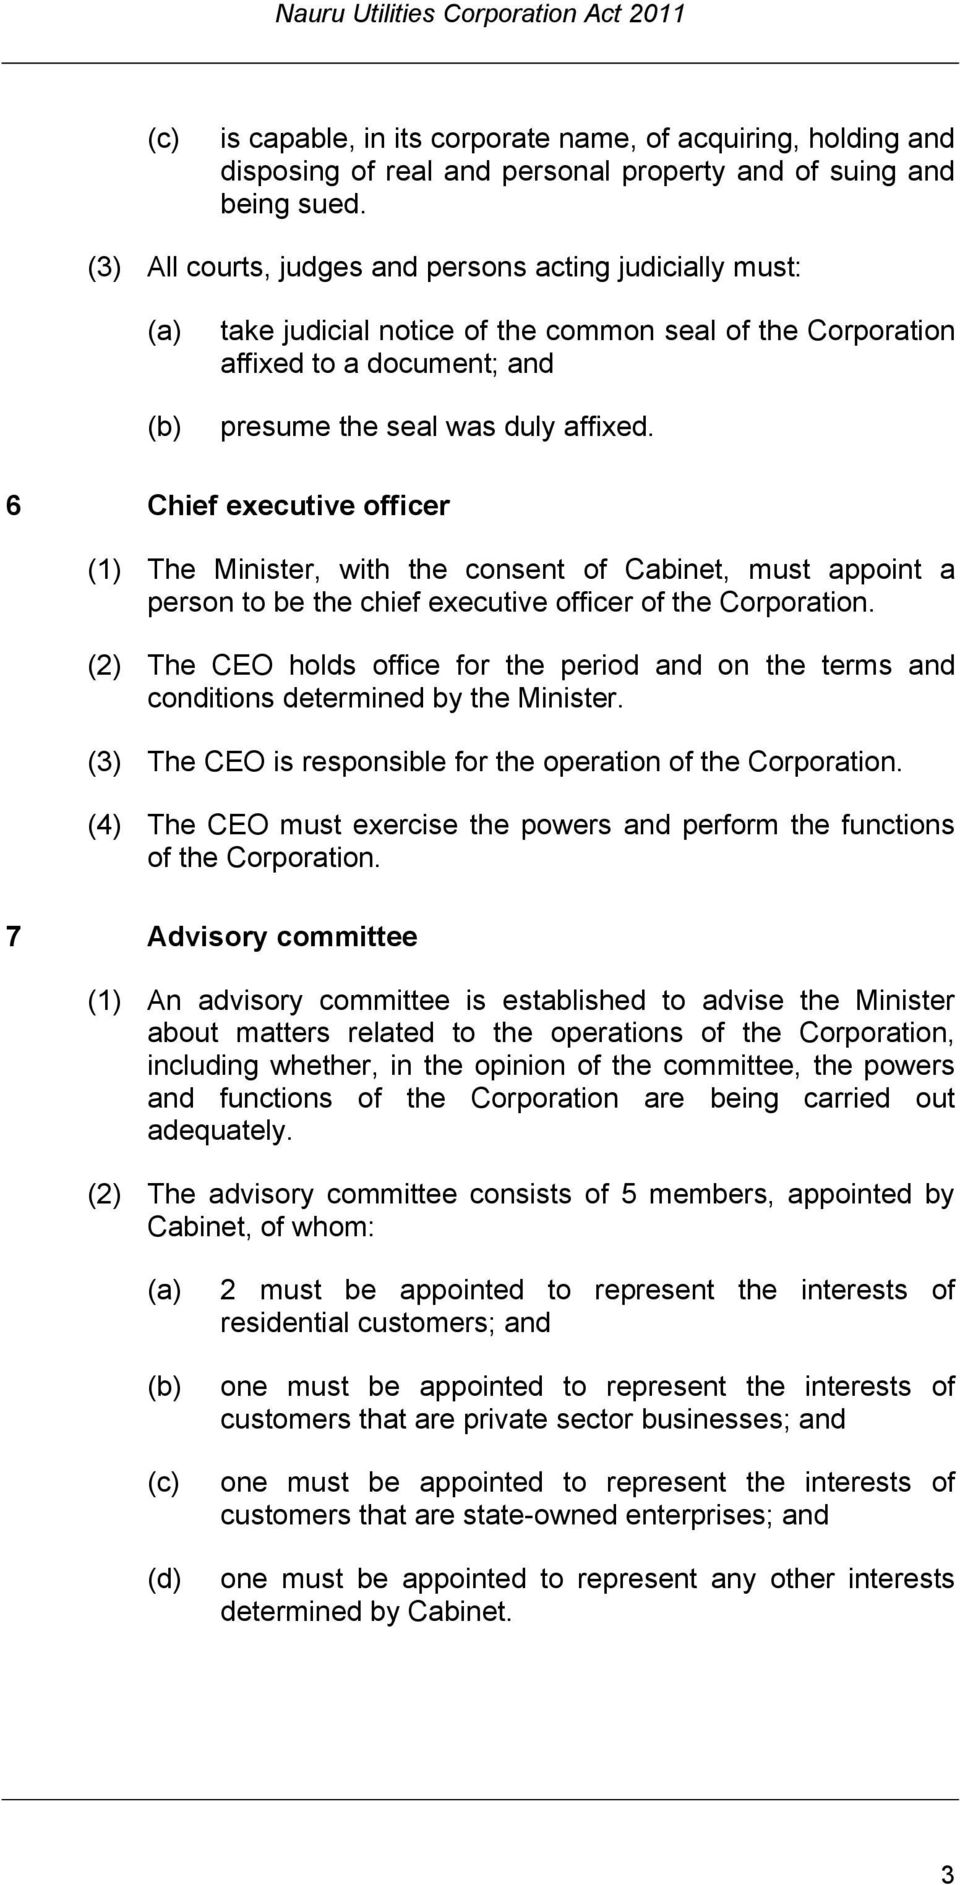 6 Chief executive officer (1) The Minister, with the consent of Cabinet, must appoint a person to be the chief executive officer of the Corporation.